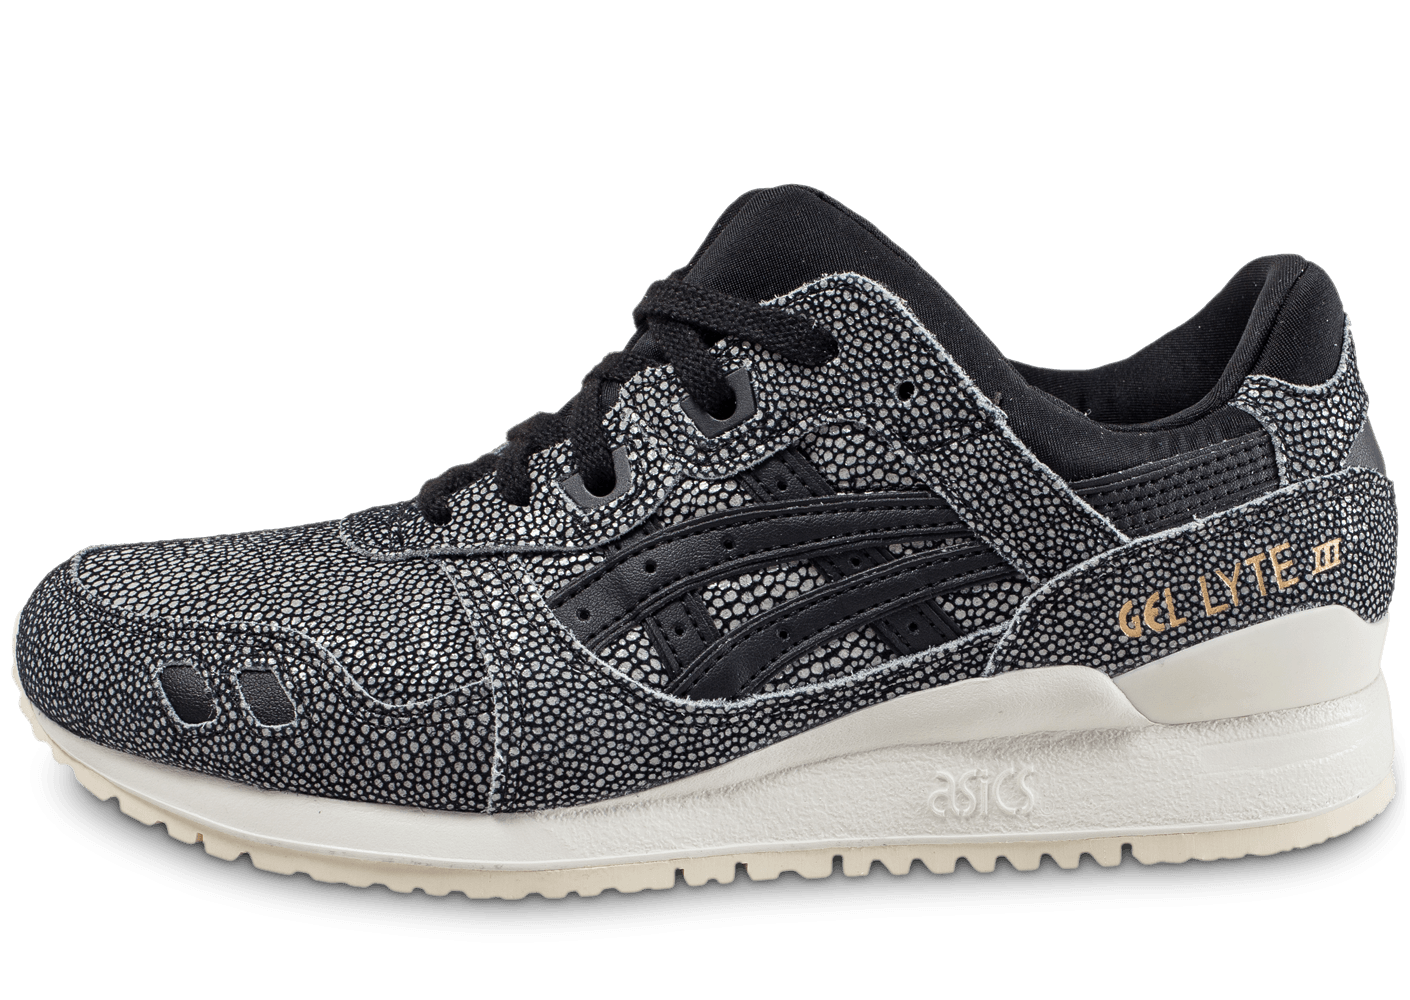 asics gel lyte 3 noire et blanche. Black Bedroom Furniture Sets. Home Design Ideas